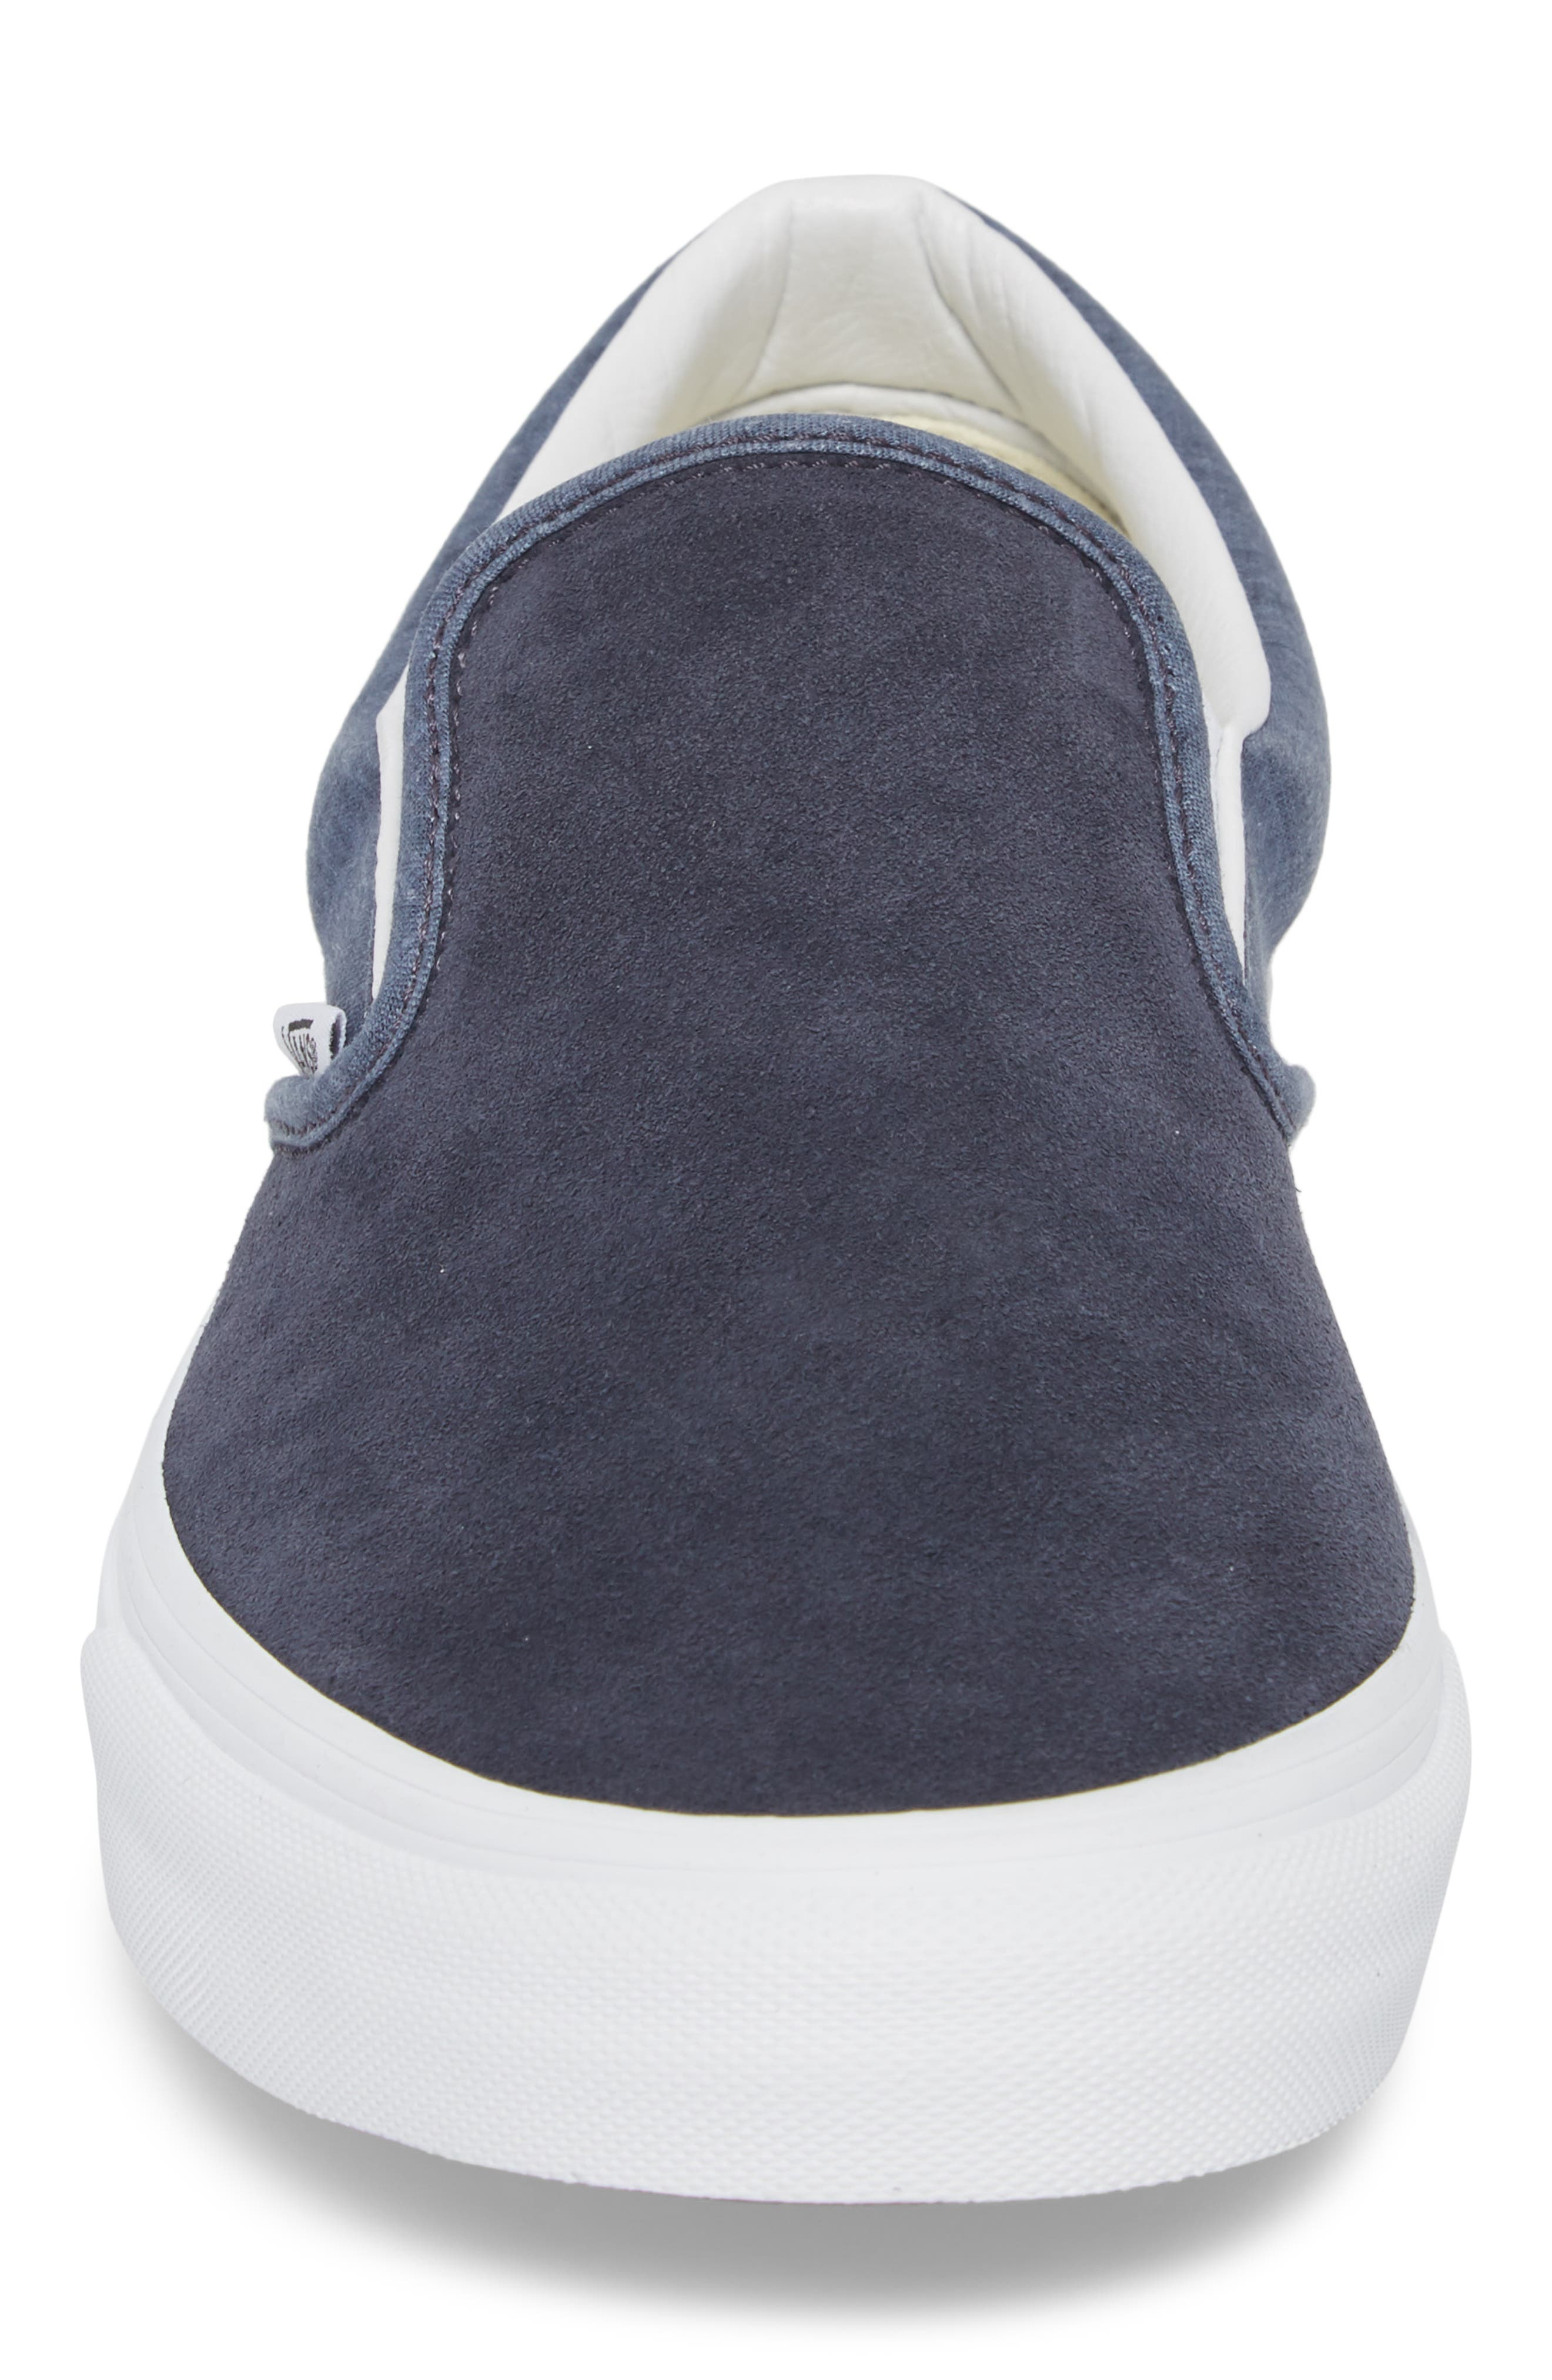 'Classic' Slip-On Sneaker,                             Alternate thumbnail 3, color,                             Parisian Night Suede